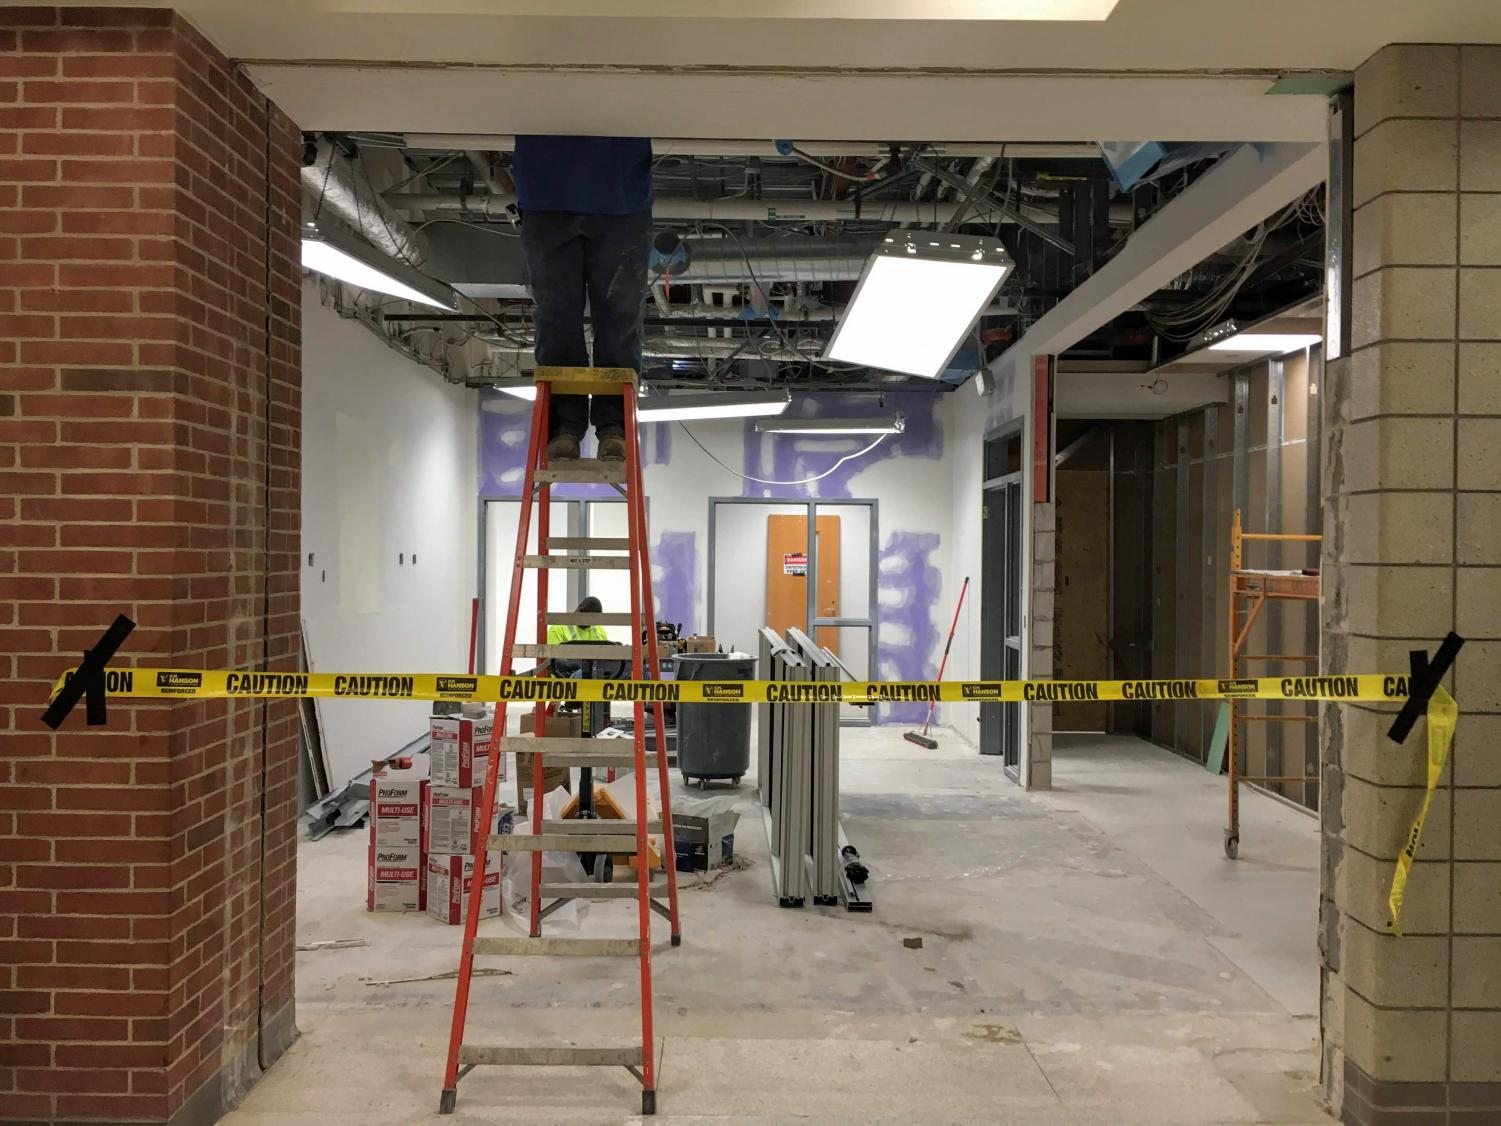 Construction workers carry out their jobs prior to CHS moving to online schooling. Despite COVID-19 construction continues to happen at CHS though there have been changes made to the timeline.